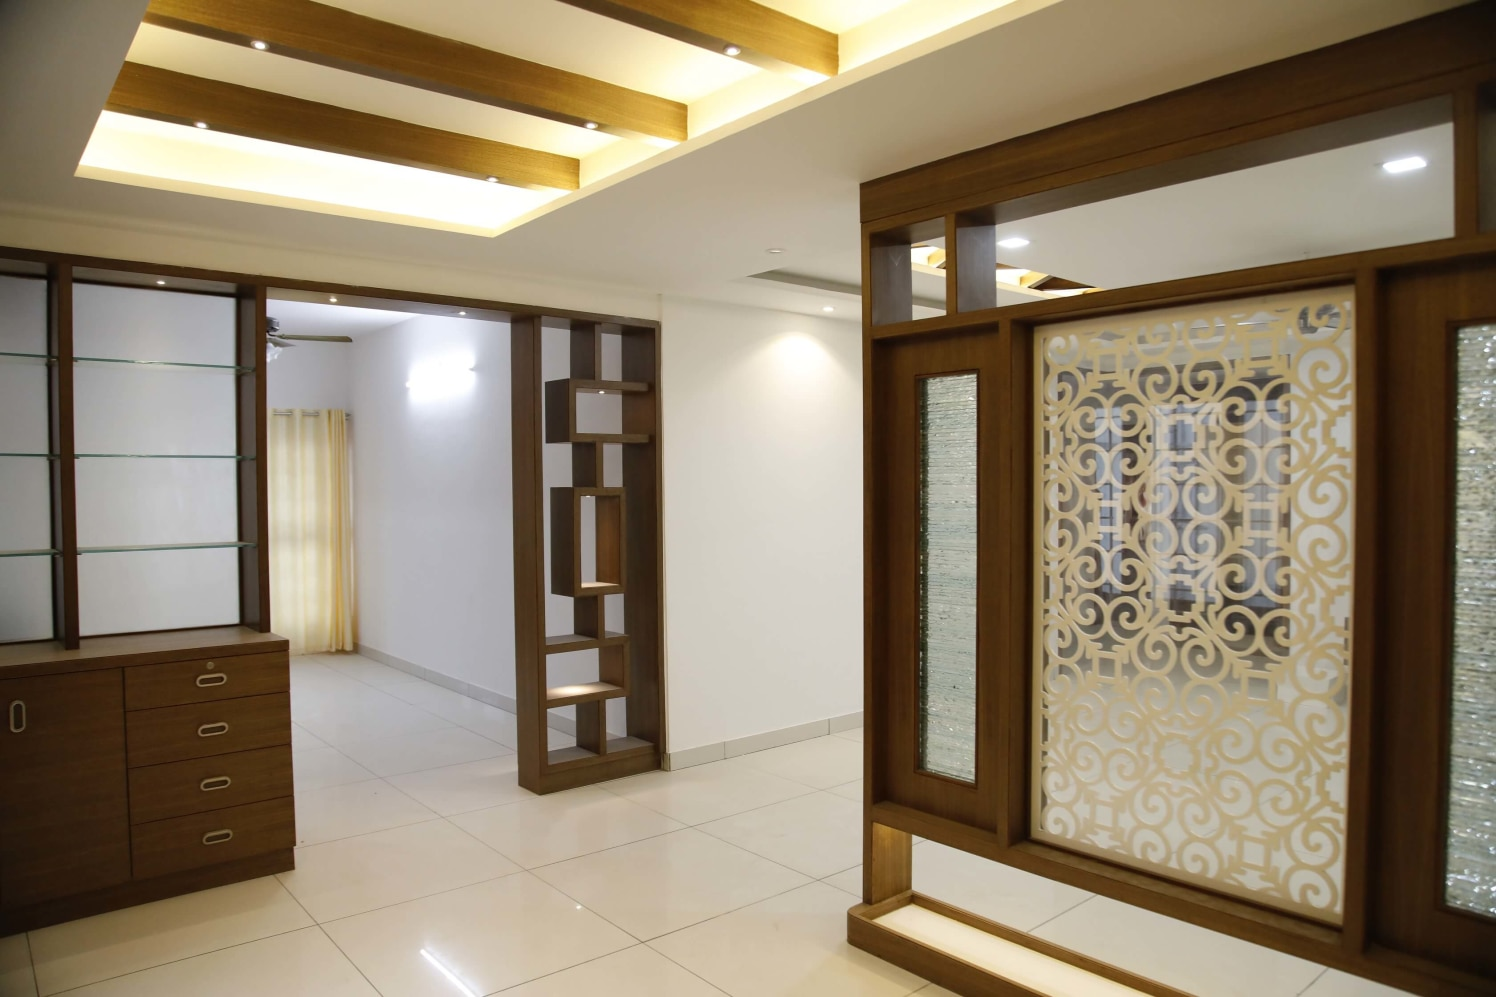 The Swanky Impression by Naushad Indoor-spaces Modern | Interior Design Photos & Ideas